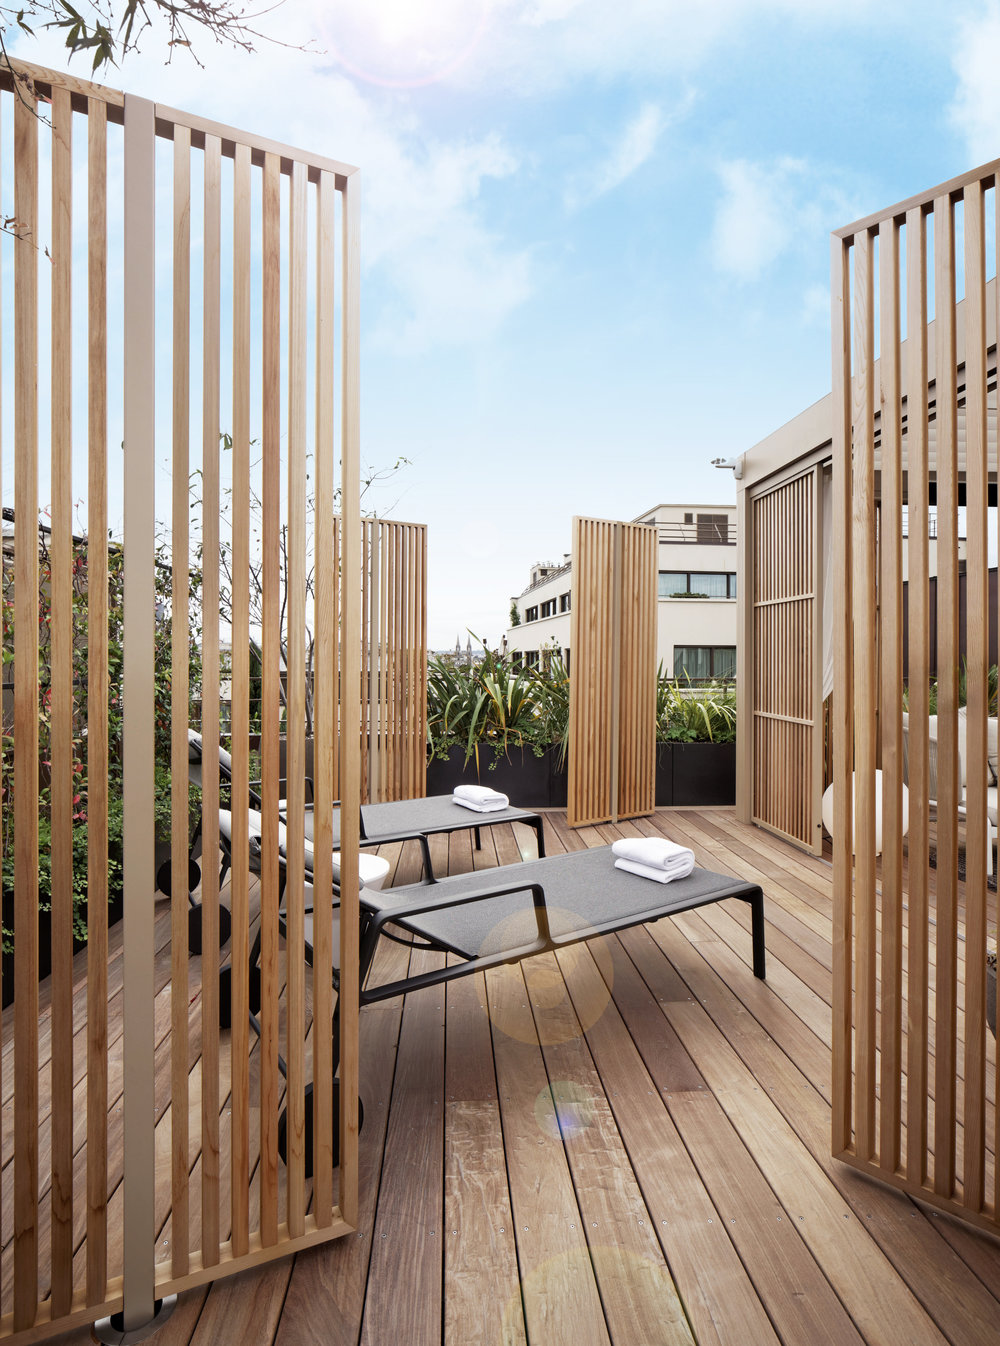 Penthouse Suite / Hotel Mandarin Oriental Paris   On the occasion of the redevelopment of the Penthouse Suite, the Agency Christophe Gautrand & Associates imagines a terrace with an oriental-Parisian atmosphere.